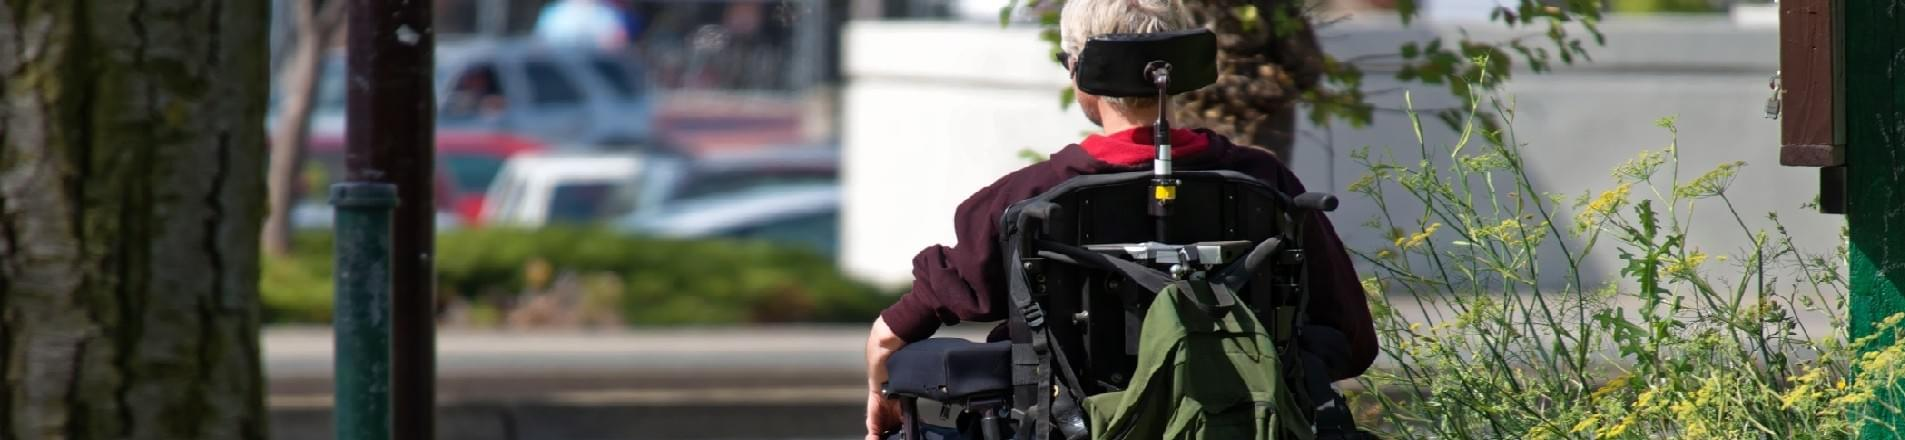 Only 3% of disabled people find condition | job-hunting